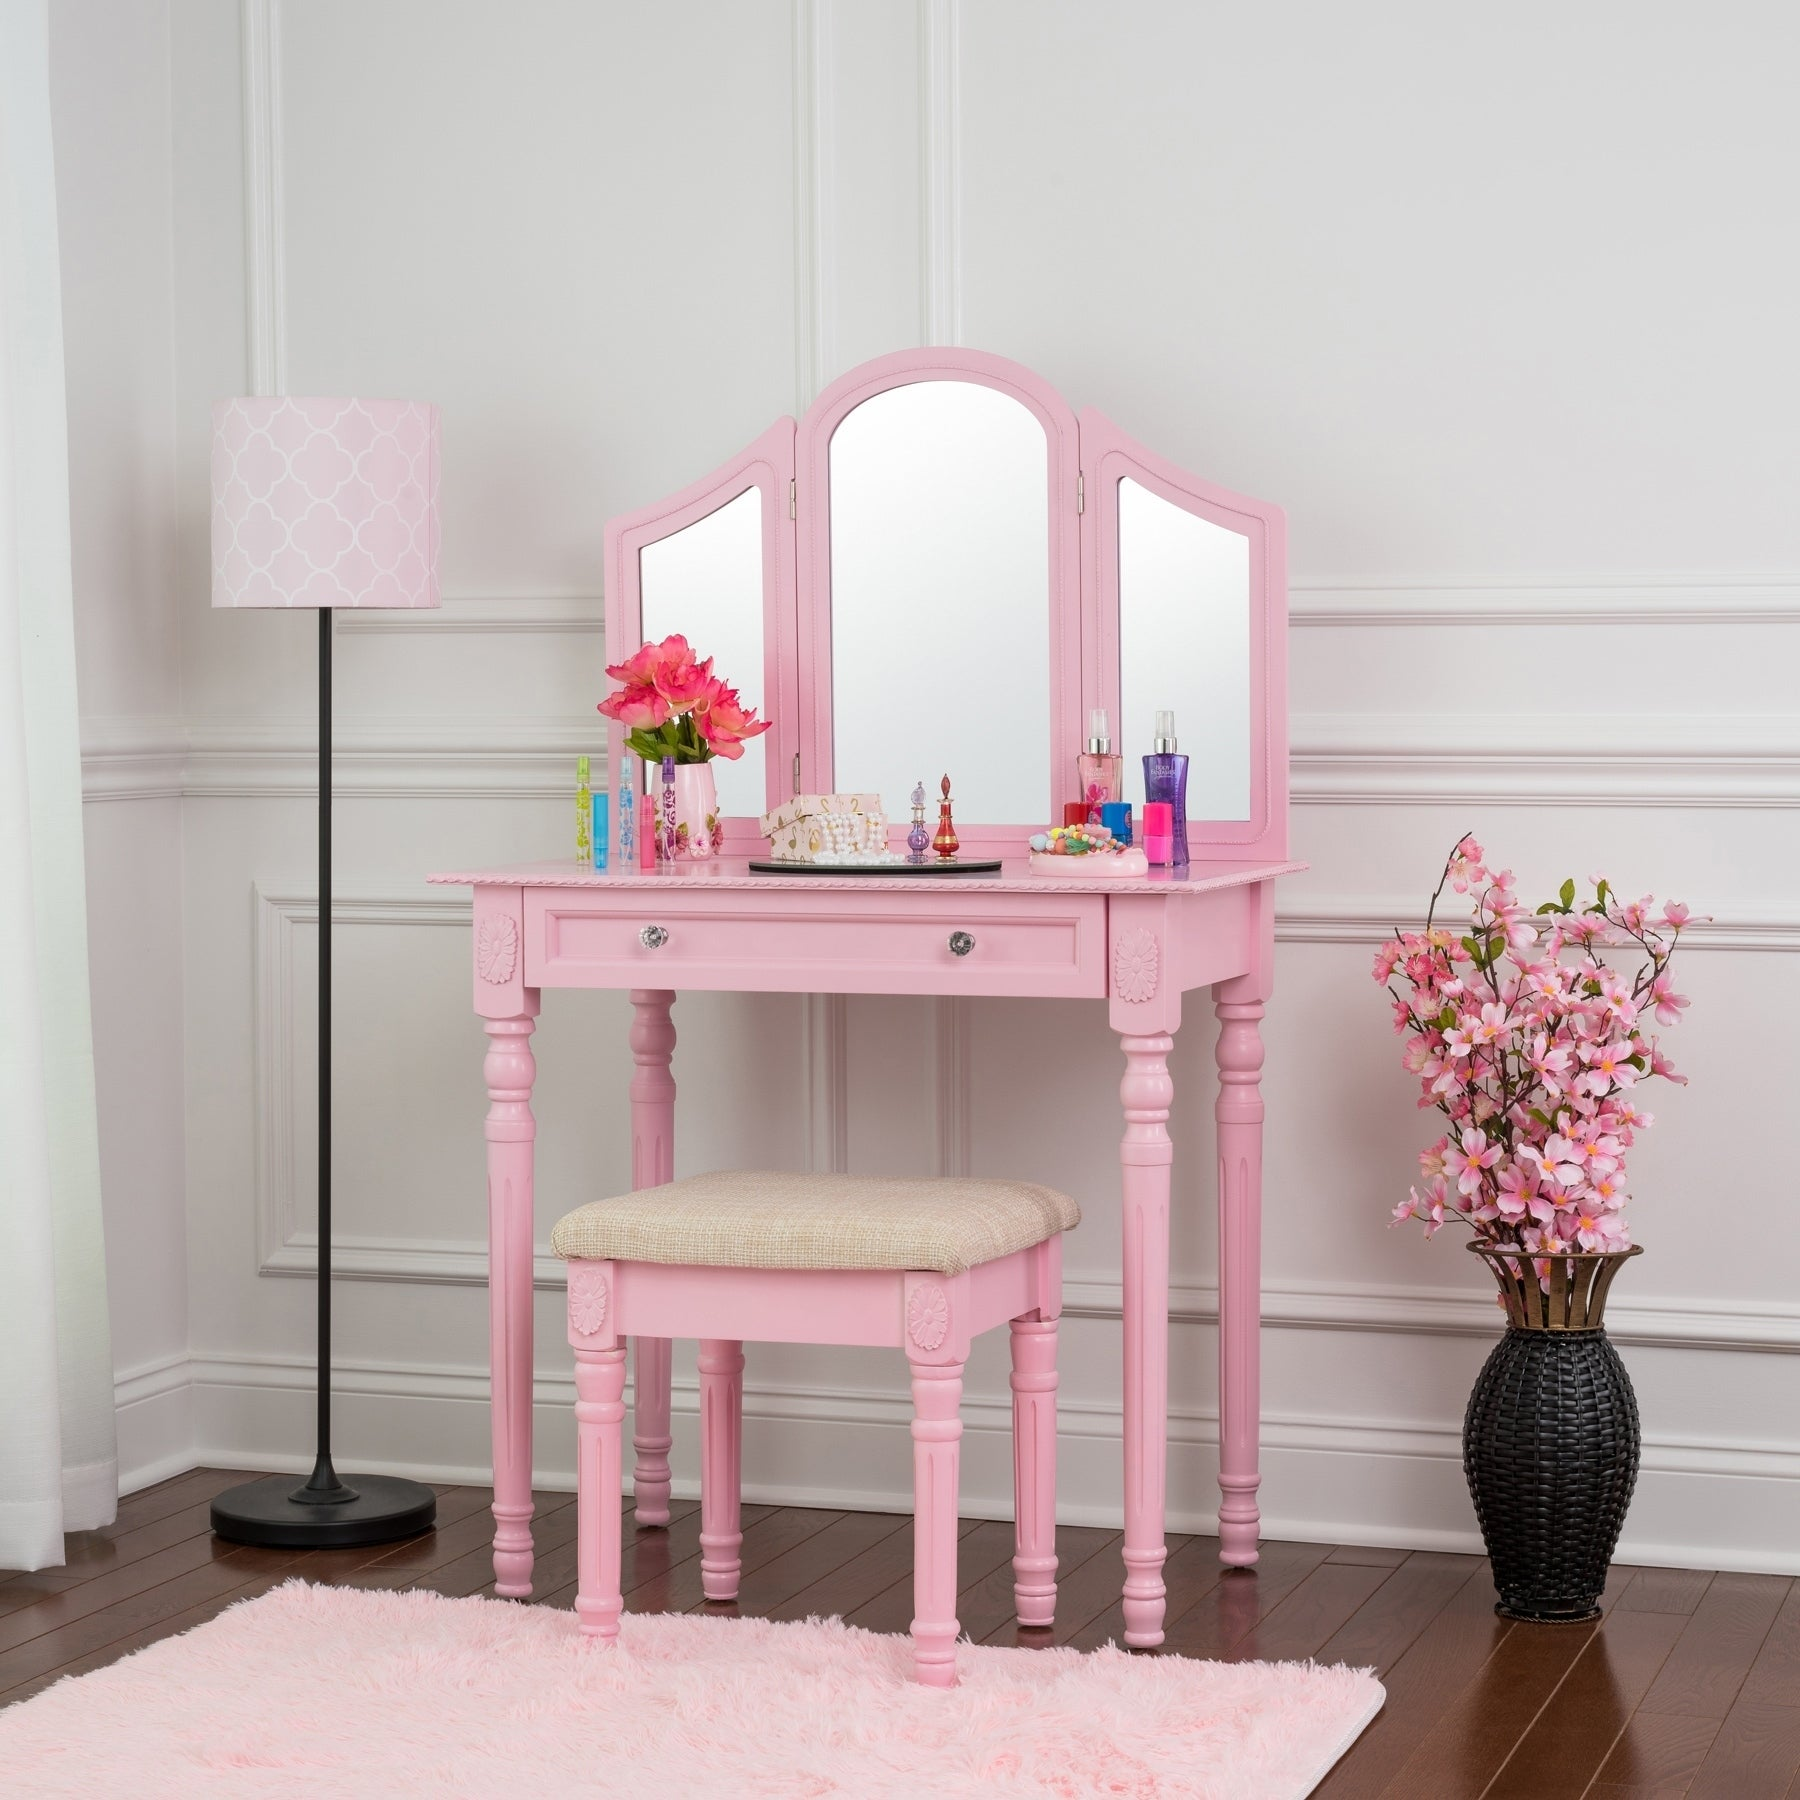 Fineboard Three Mirror Vanity Dressing Table Set with Sto...